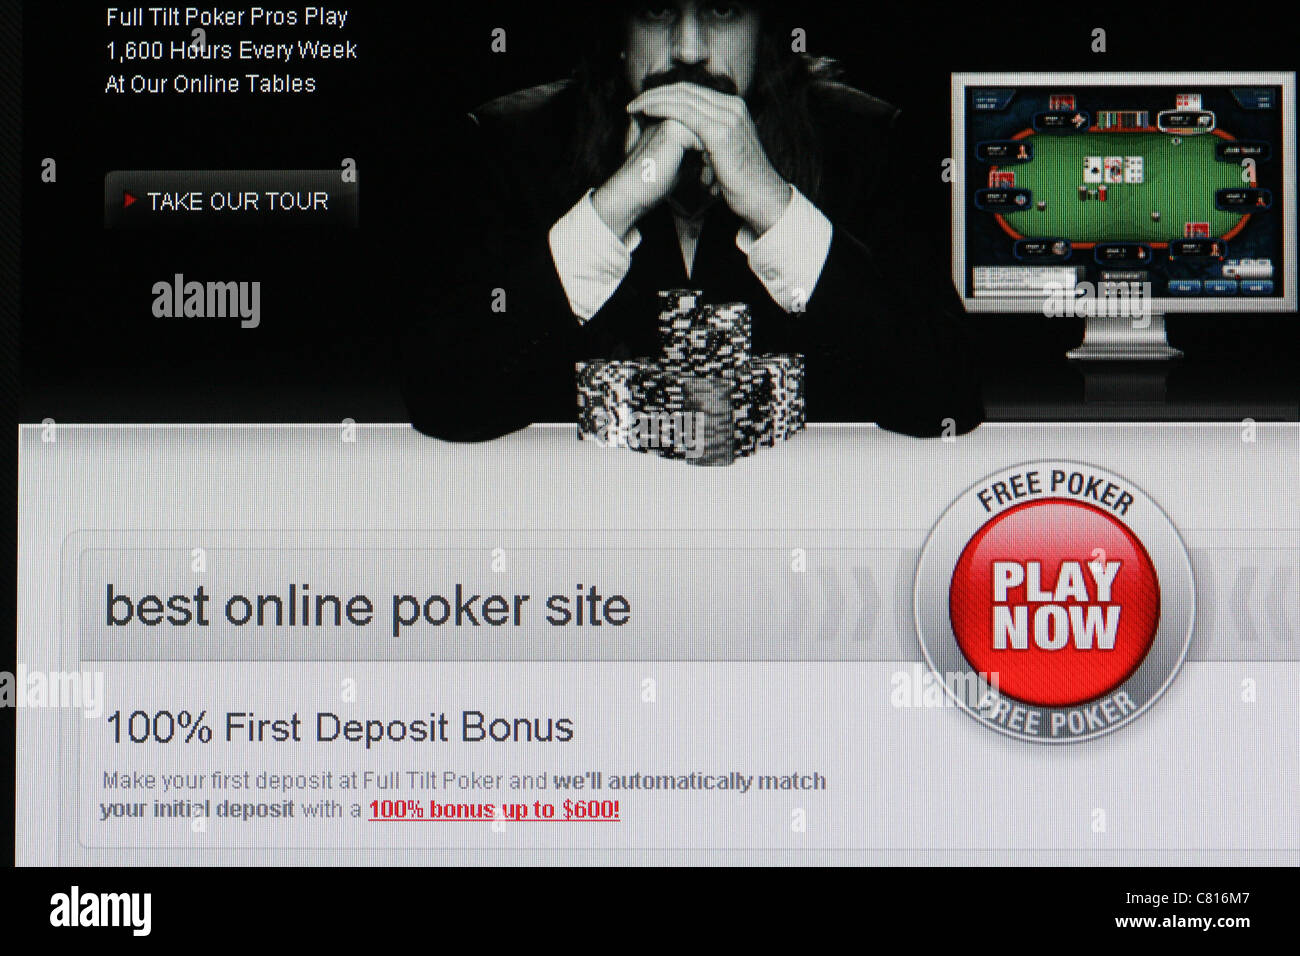 online poker gambling website - Stock Image